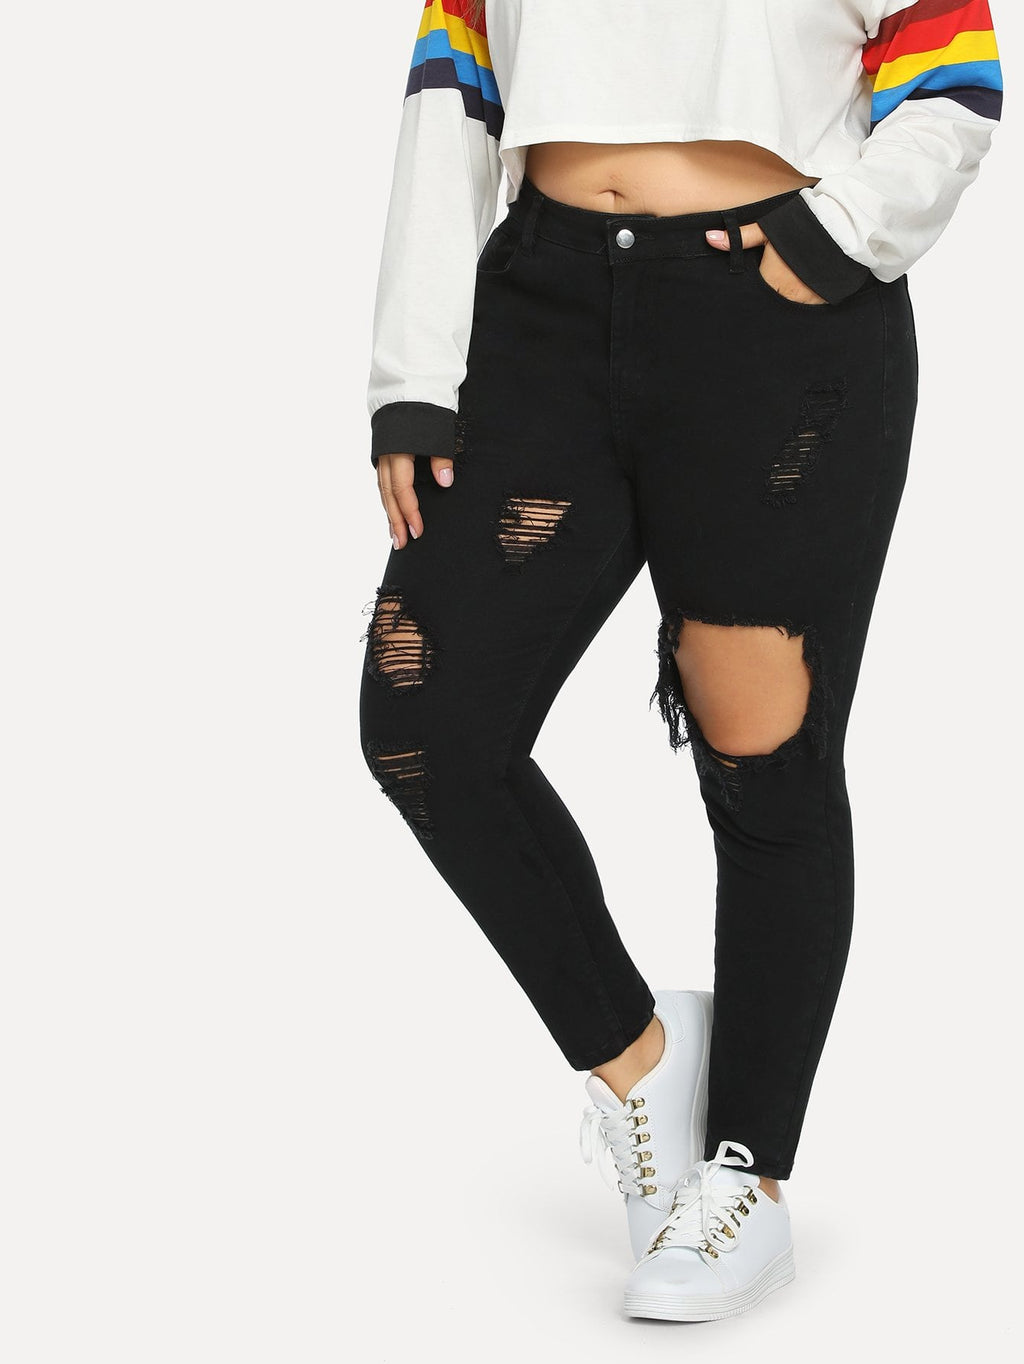 Plus Size Jeans - Ripped Solid Skinny Jeans